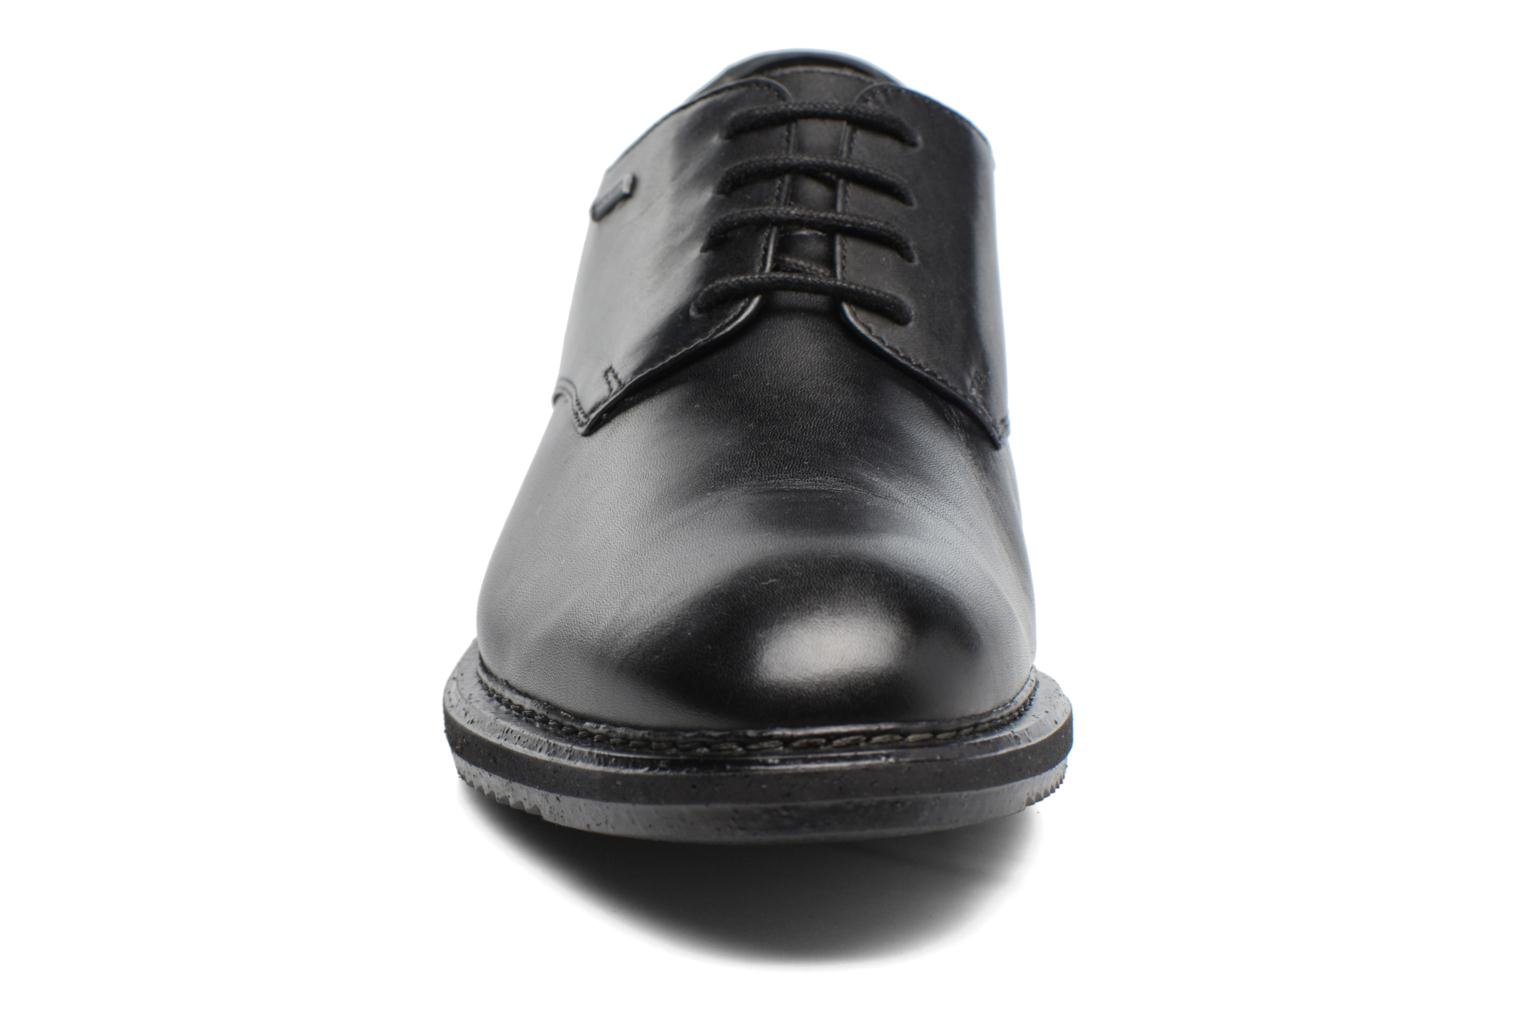 KenleyWalk GTX Black leather